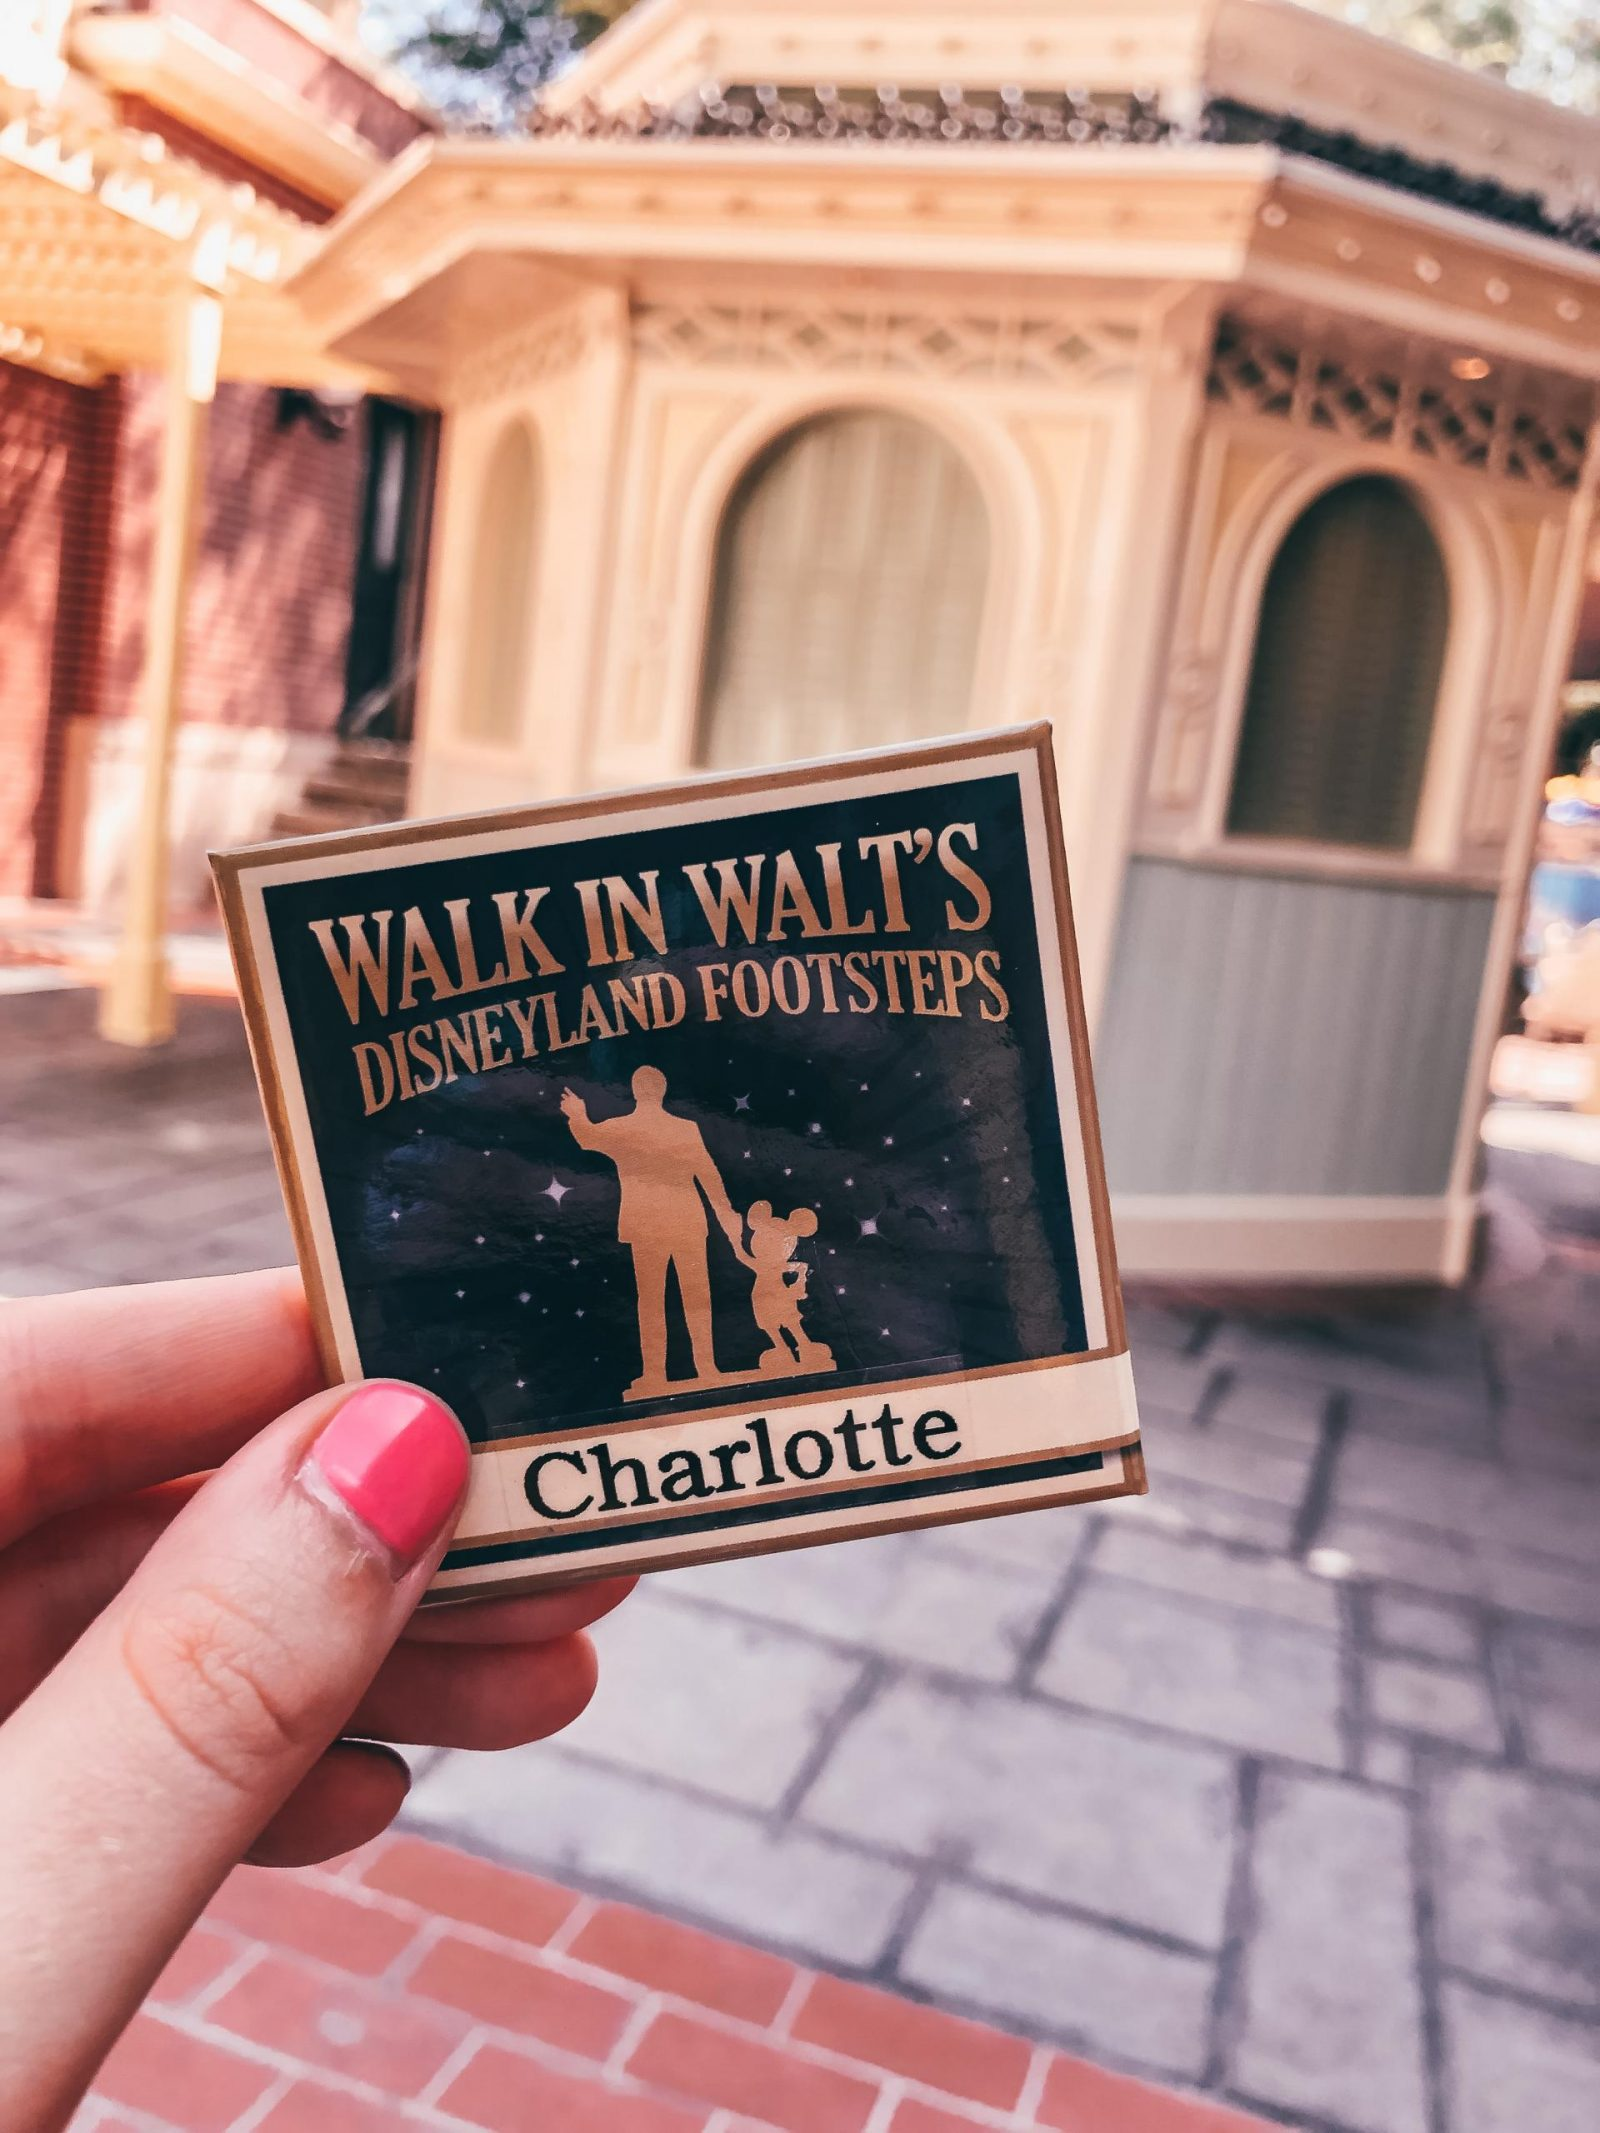 Walk in Walt's Disneyland Footsteps Tour Badge